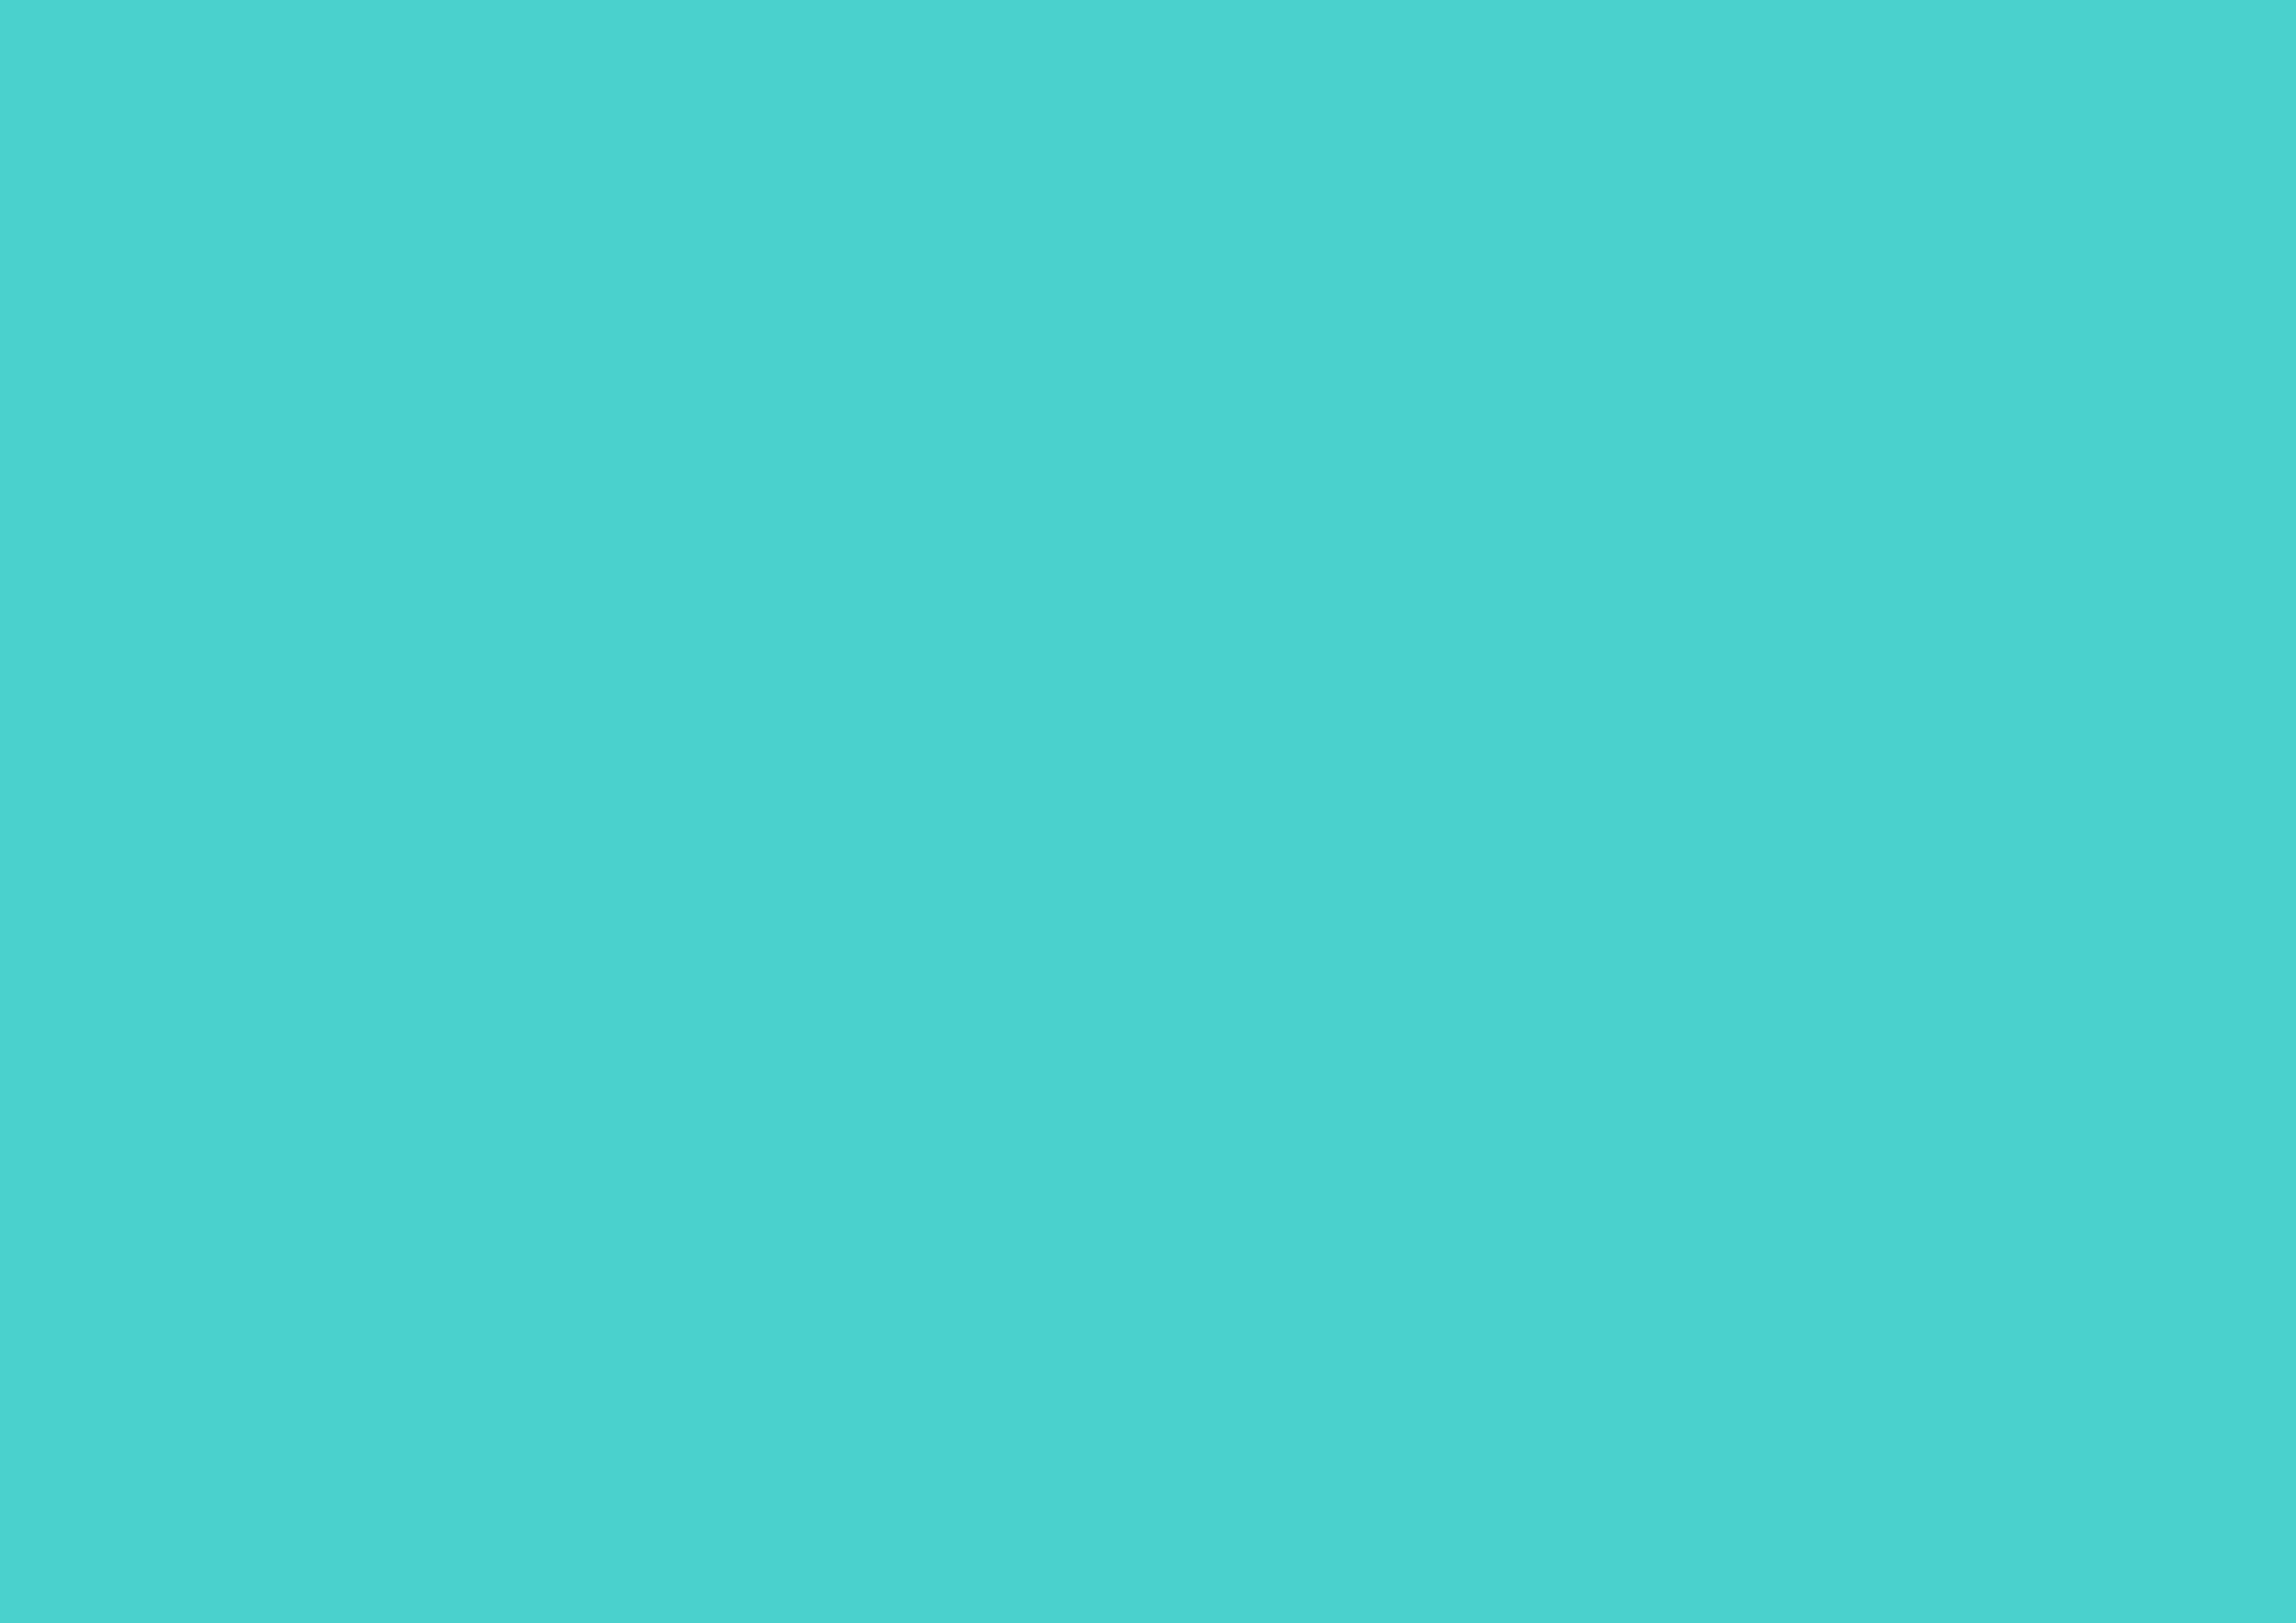 3508x2480 Medium Turquoise Solid Color Background